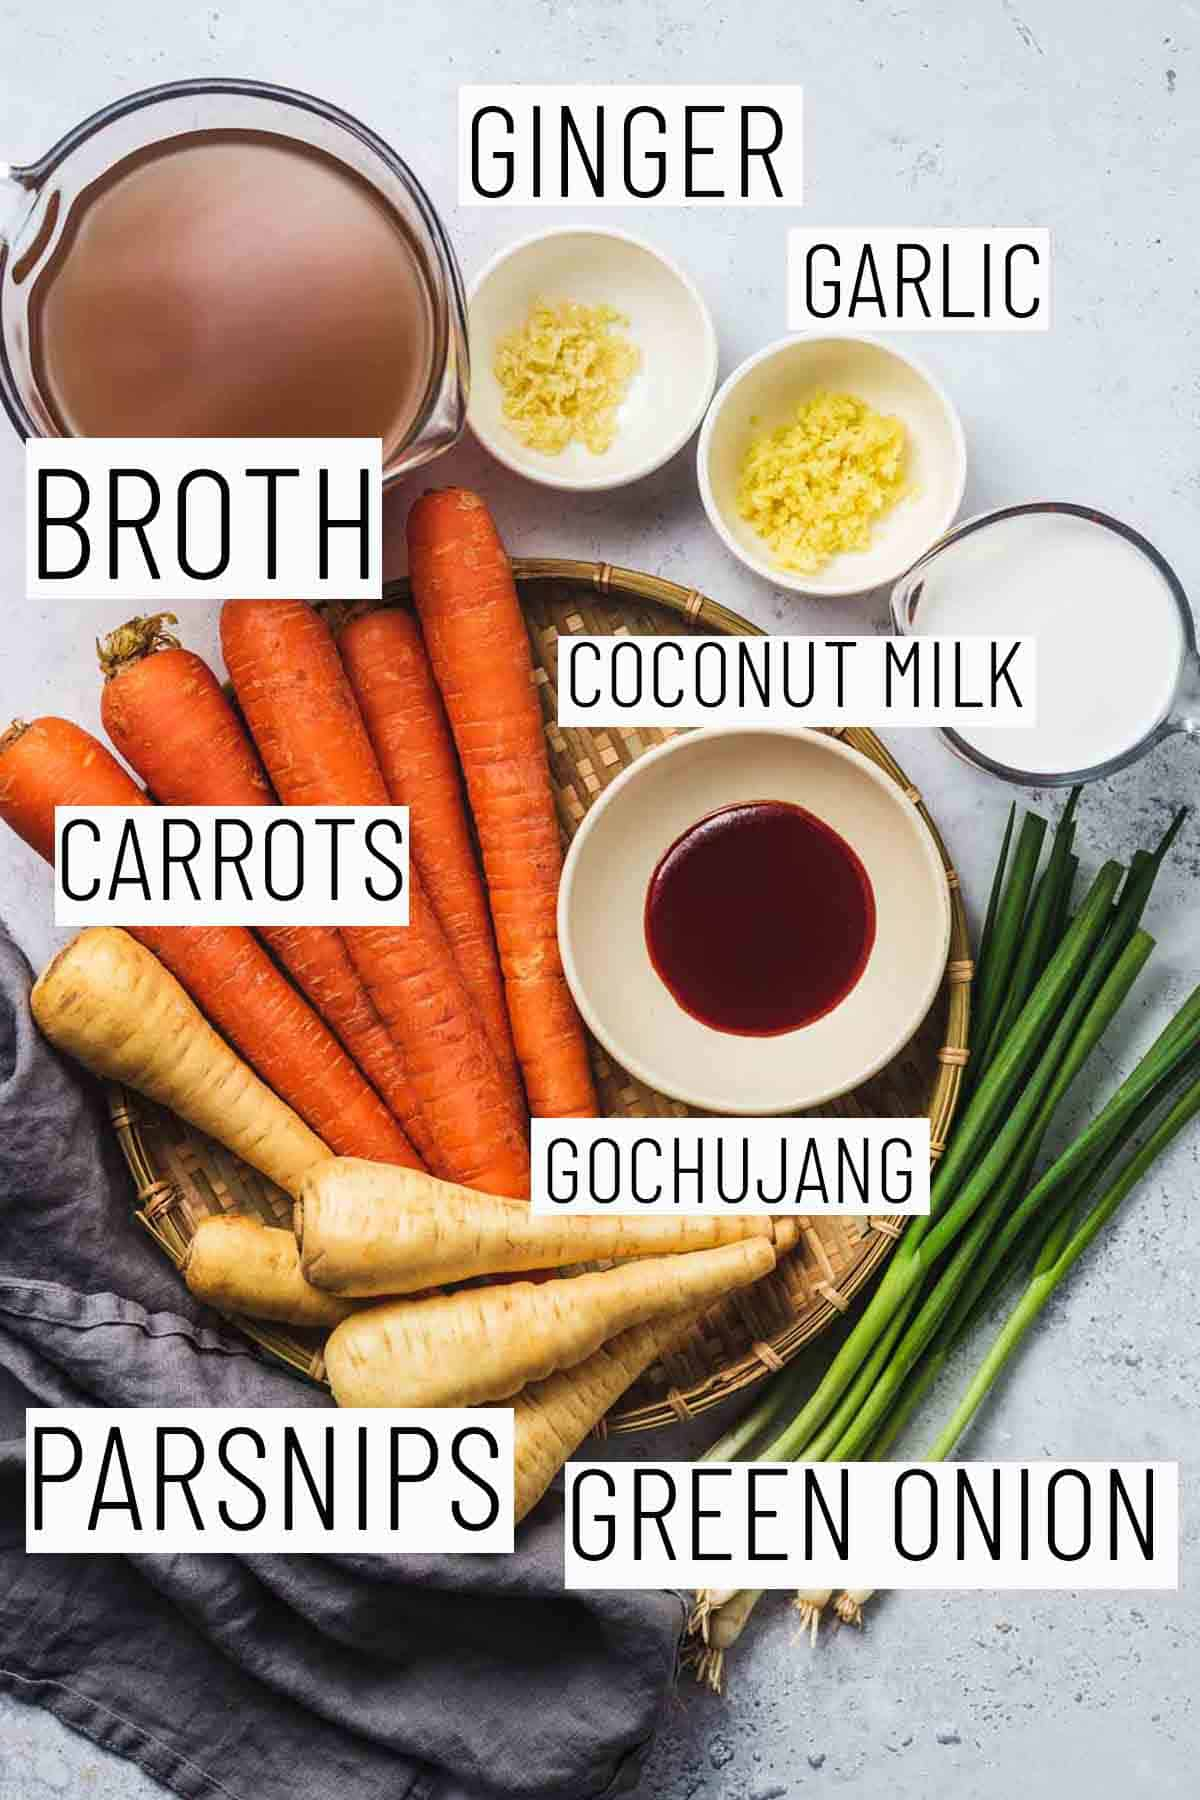 Flat lay image with portioned recipe ingredients including green onion, parsnips, Gochujang, garlic, ginger, broth, and coconut milk.